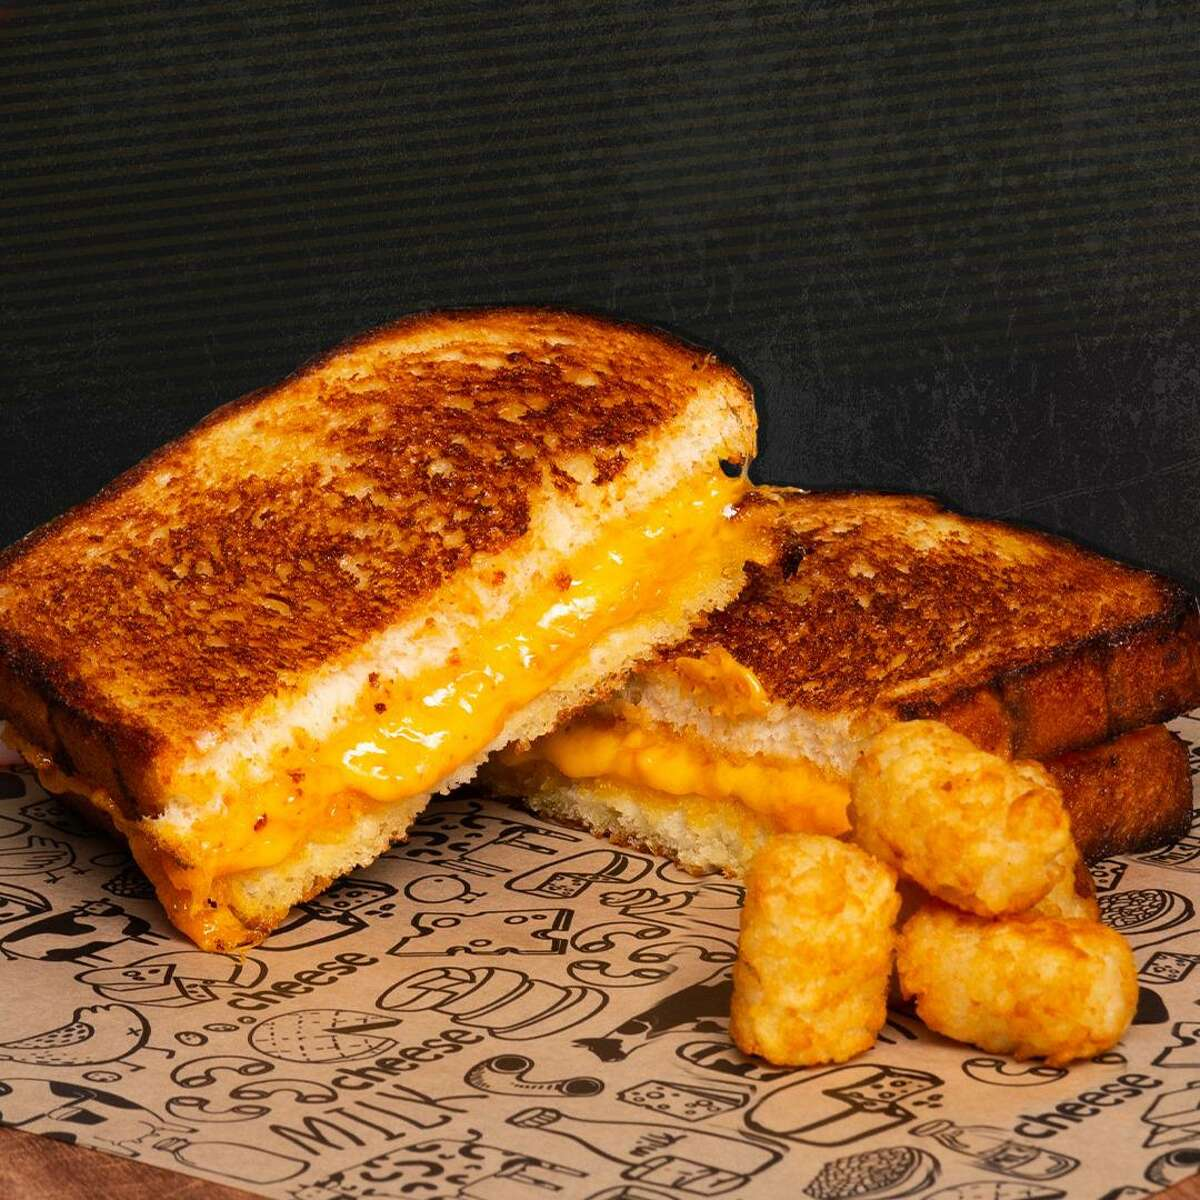 I Heart Mac & Cheese is planing to open a Deer Park location in early June. The fast-casual restaurant franchise specializes in the traditional mac-and-cheese staple but allows customers to their own personalized spins on dishes.